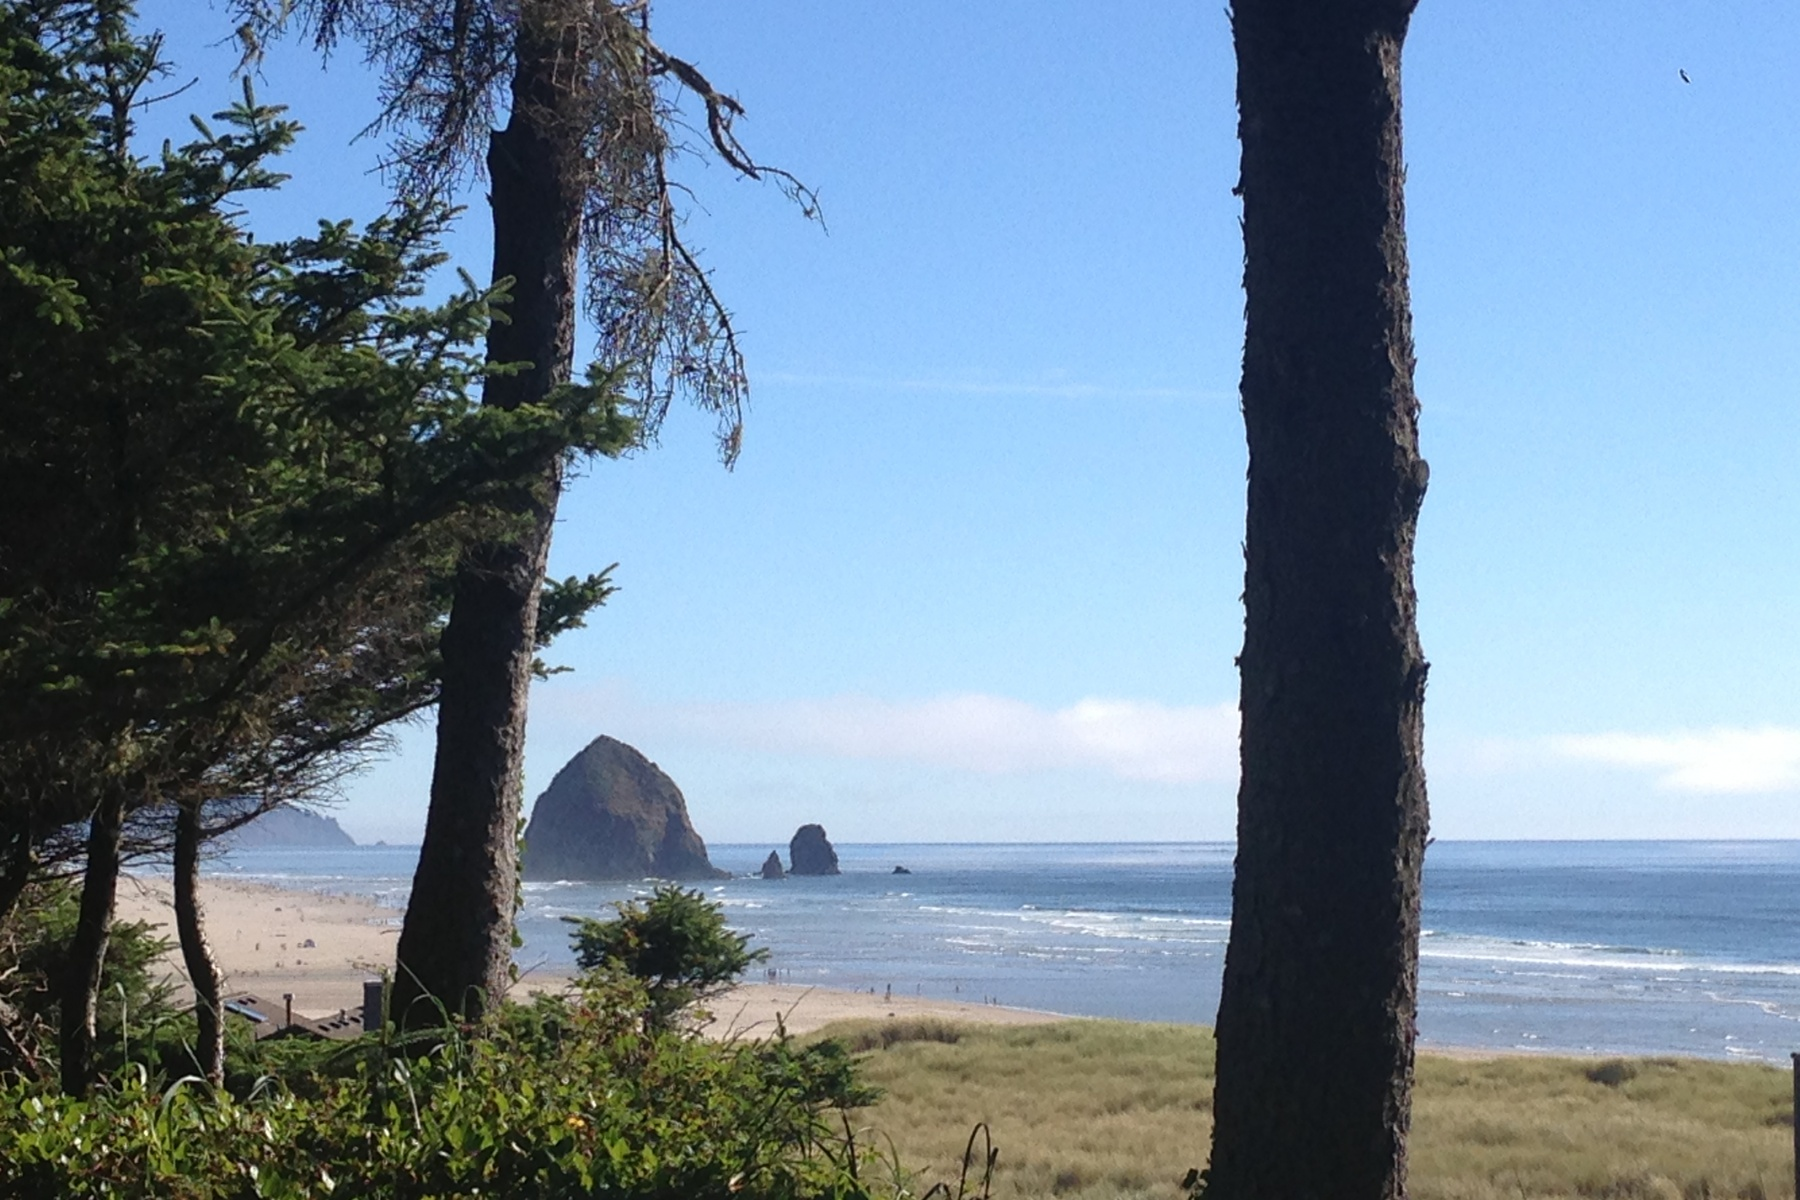 Land for Sale at 532 N Laurel, CANNON BEACH Cannon Beach, Oregon, 97110 United States